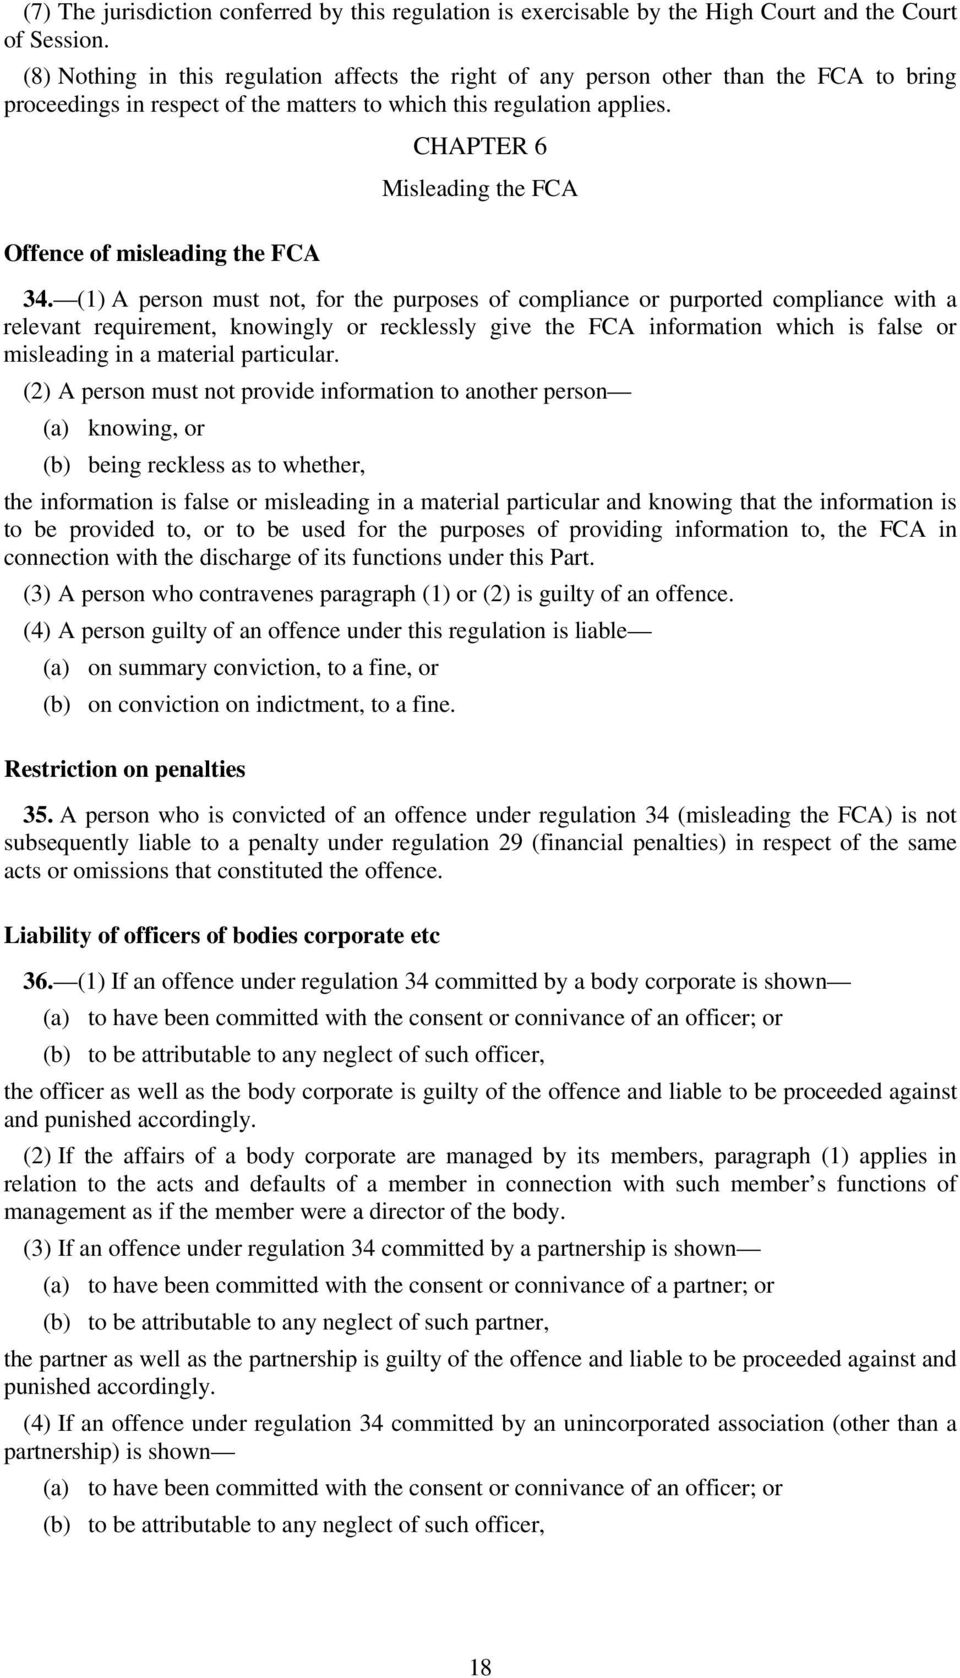 Offence of misleading the FCA CHAPTER 6 Misleading the FCA 34.